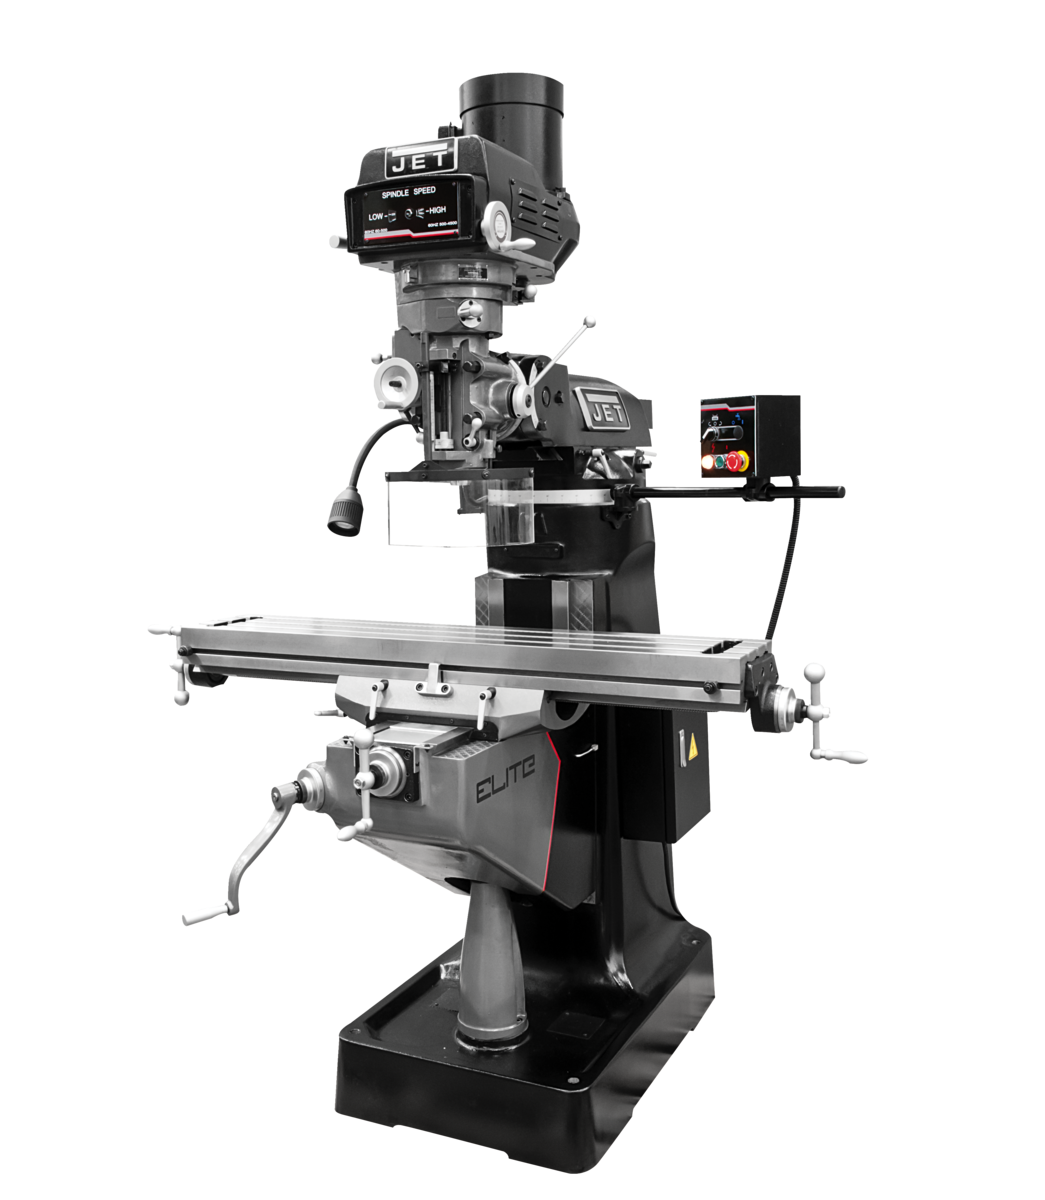 ETM-949 Mill with 3-Axis ACU-RITE 203  (Knee) DRO and X-Axis JET Powerfeed